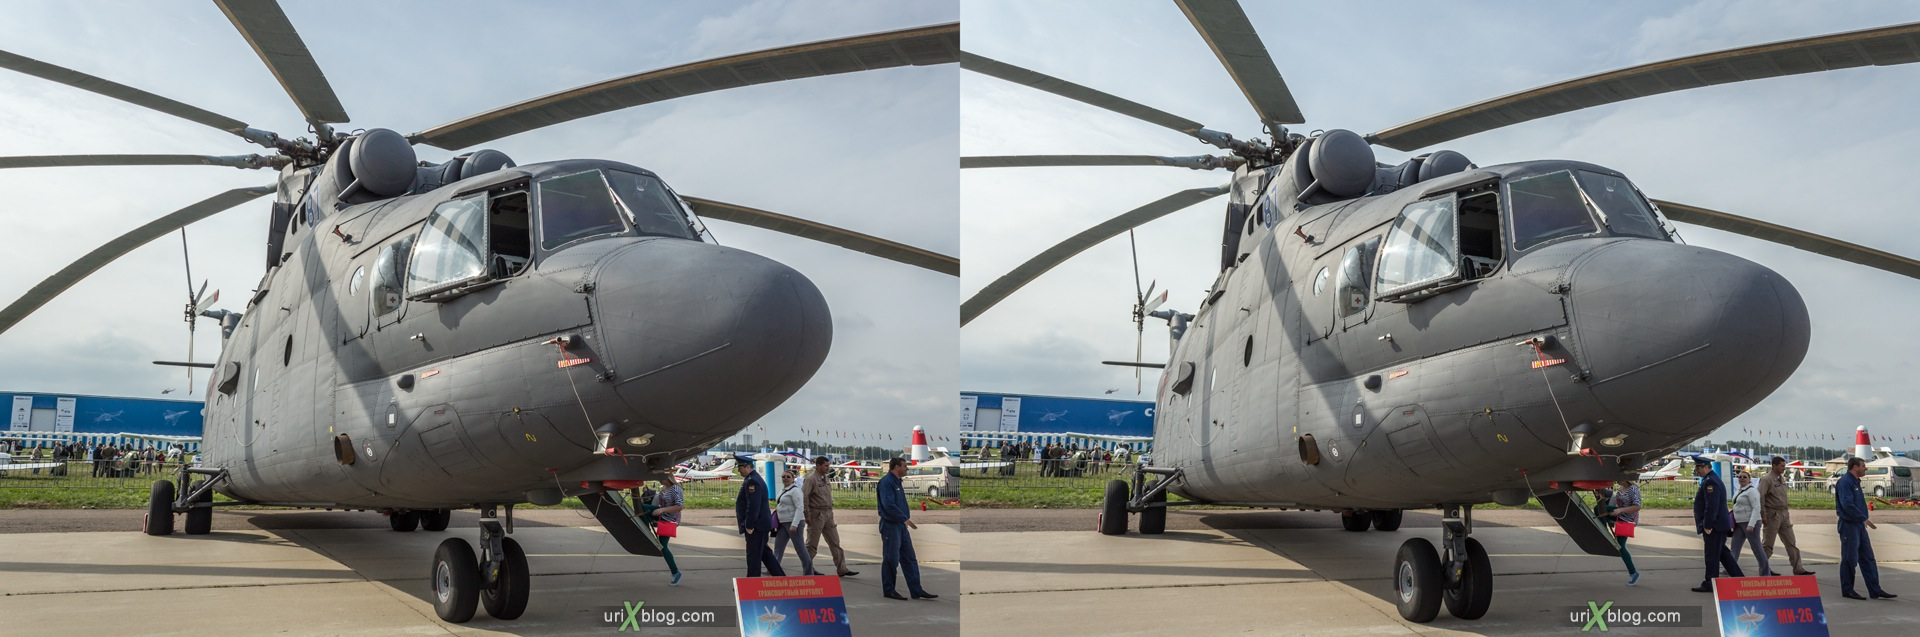 2013, MAKS, International Aviation and Space Salon, Russia, Ramenskoye airfield, Mi-26, helicopter, 3D, stereo pair, cross-eyed, crossview, cross view stereo pair, stereoscopic